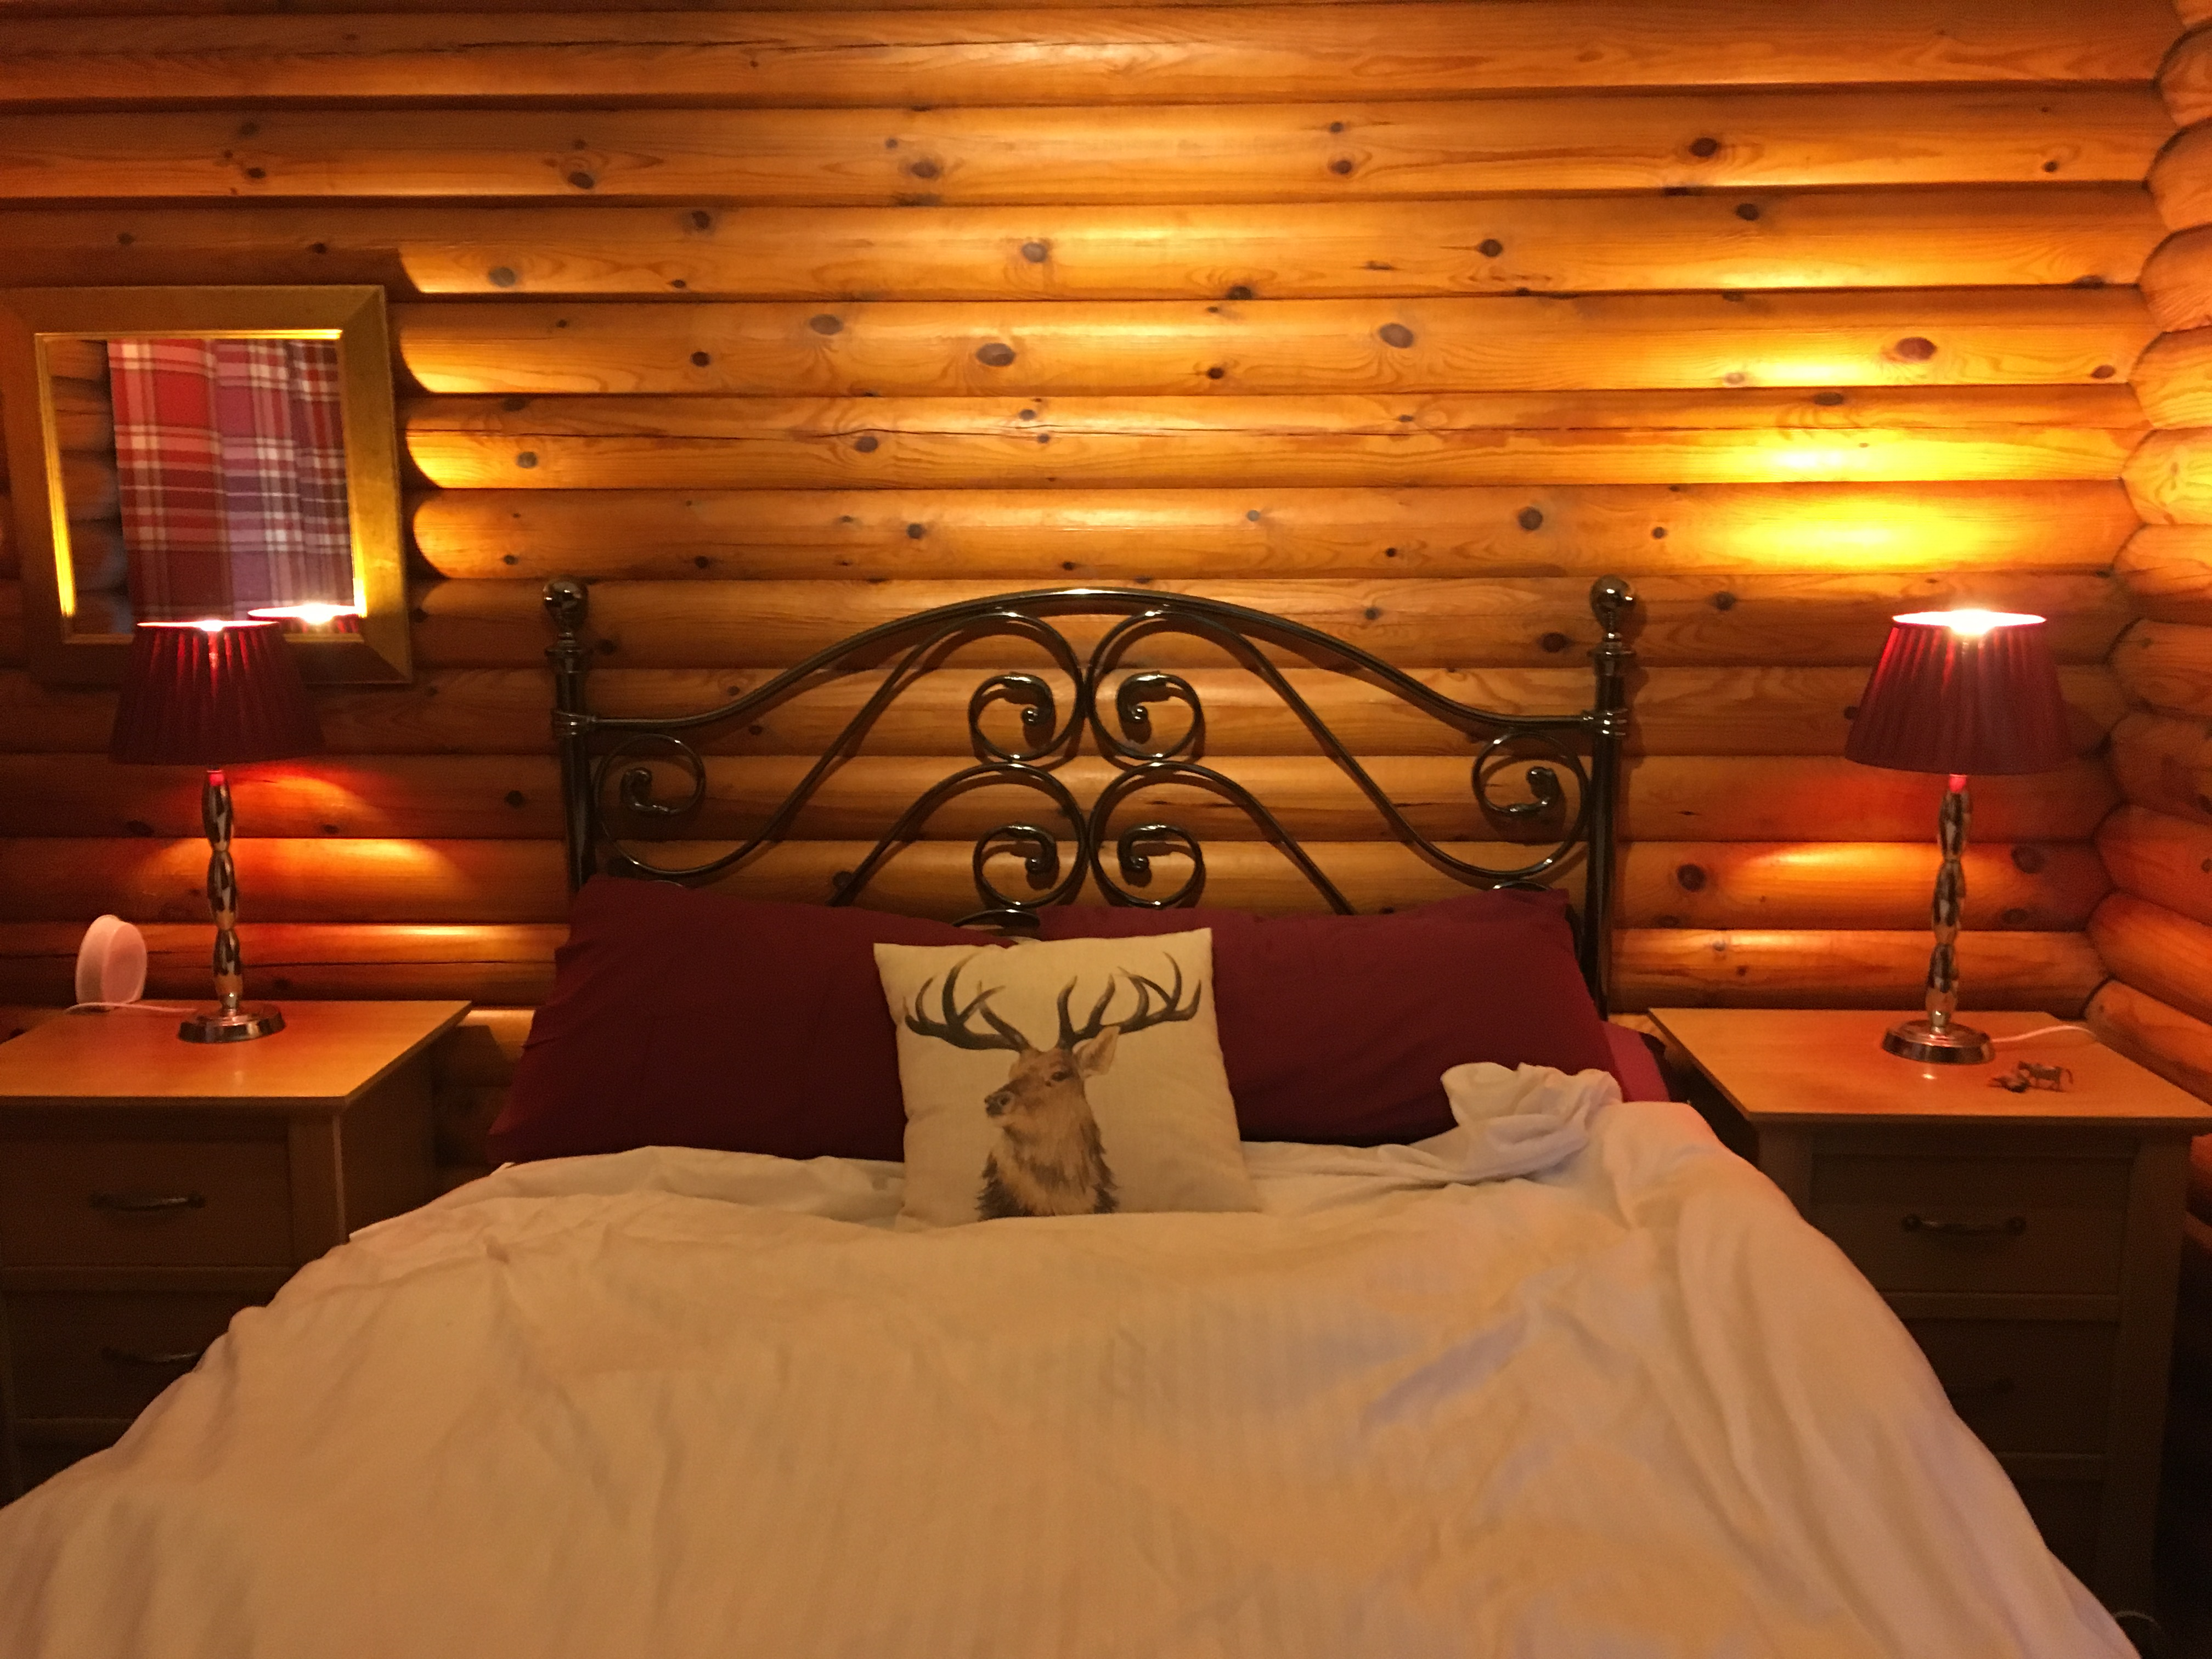 Image of dimly lit bedroom in a log cabin. Complete with a totally adorable reindeer pillow.